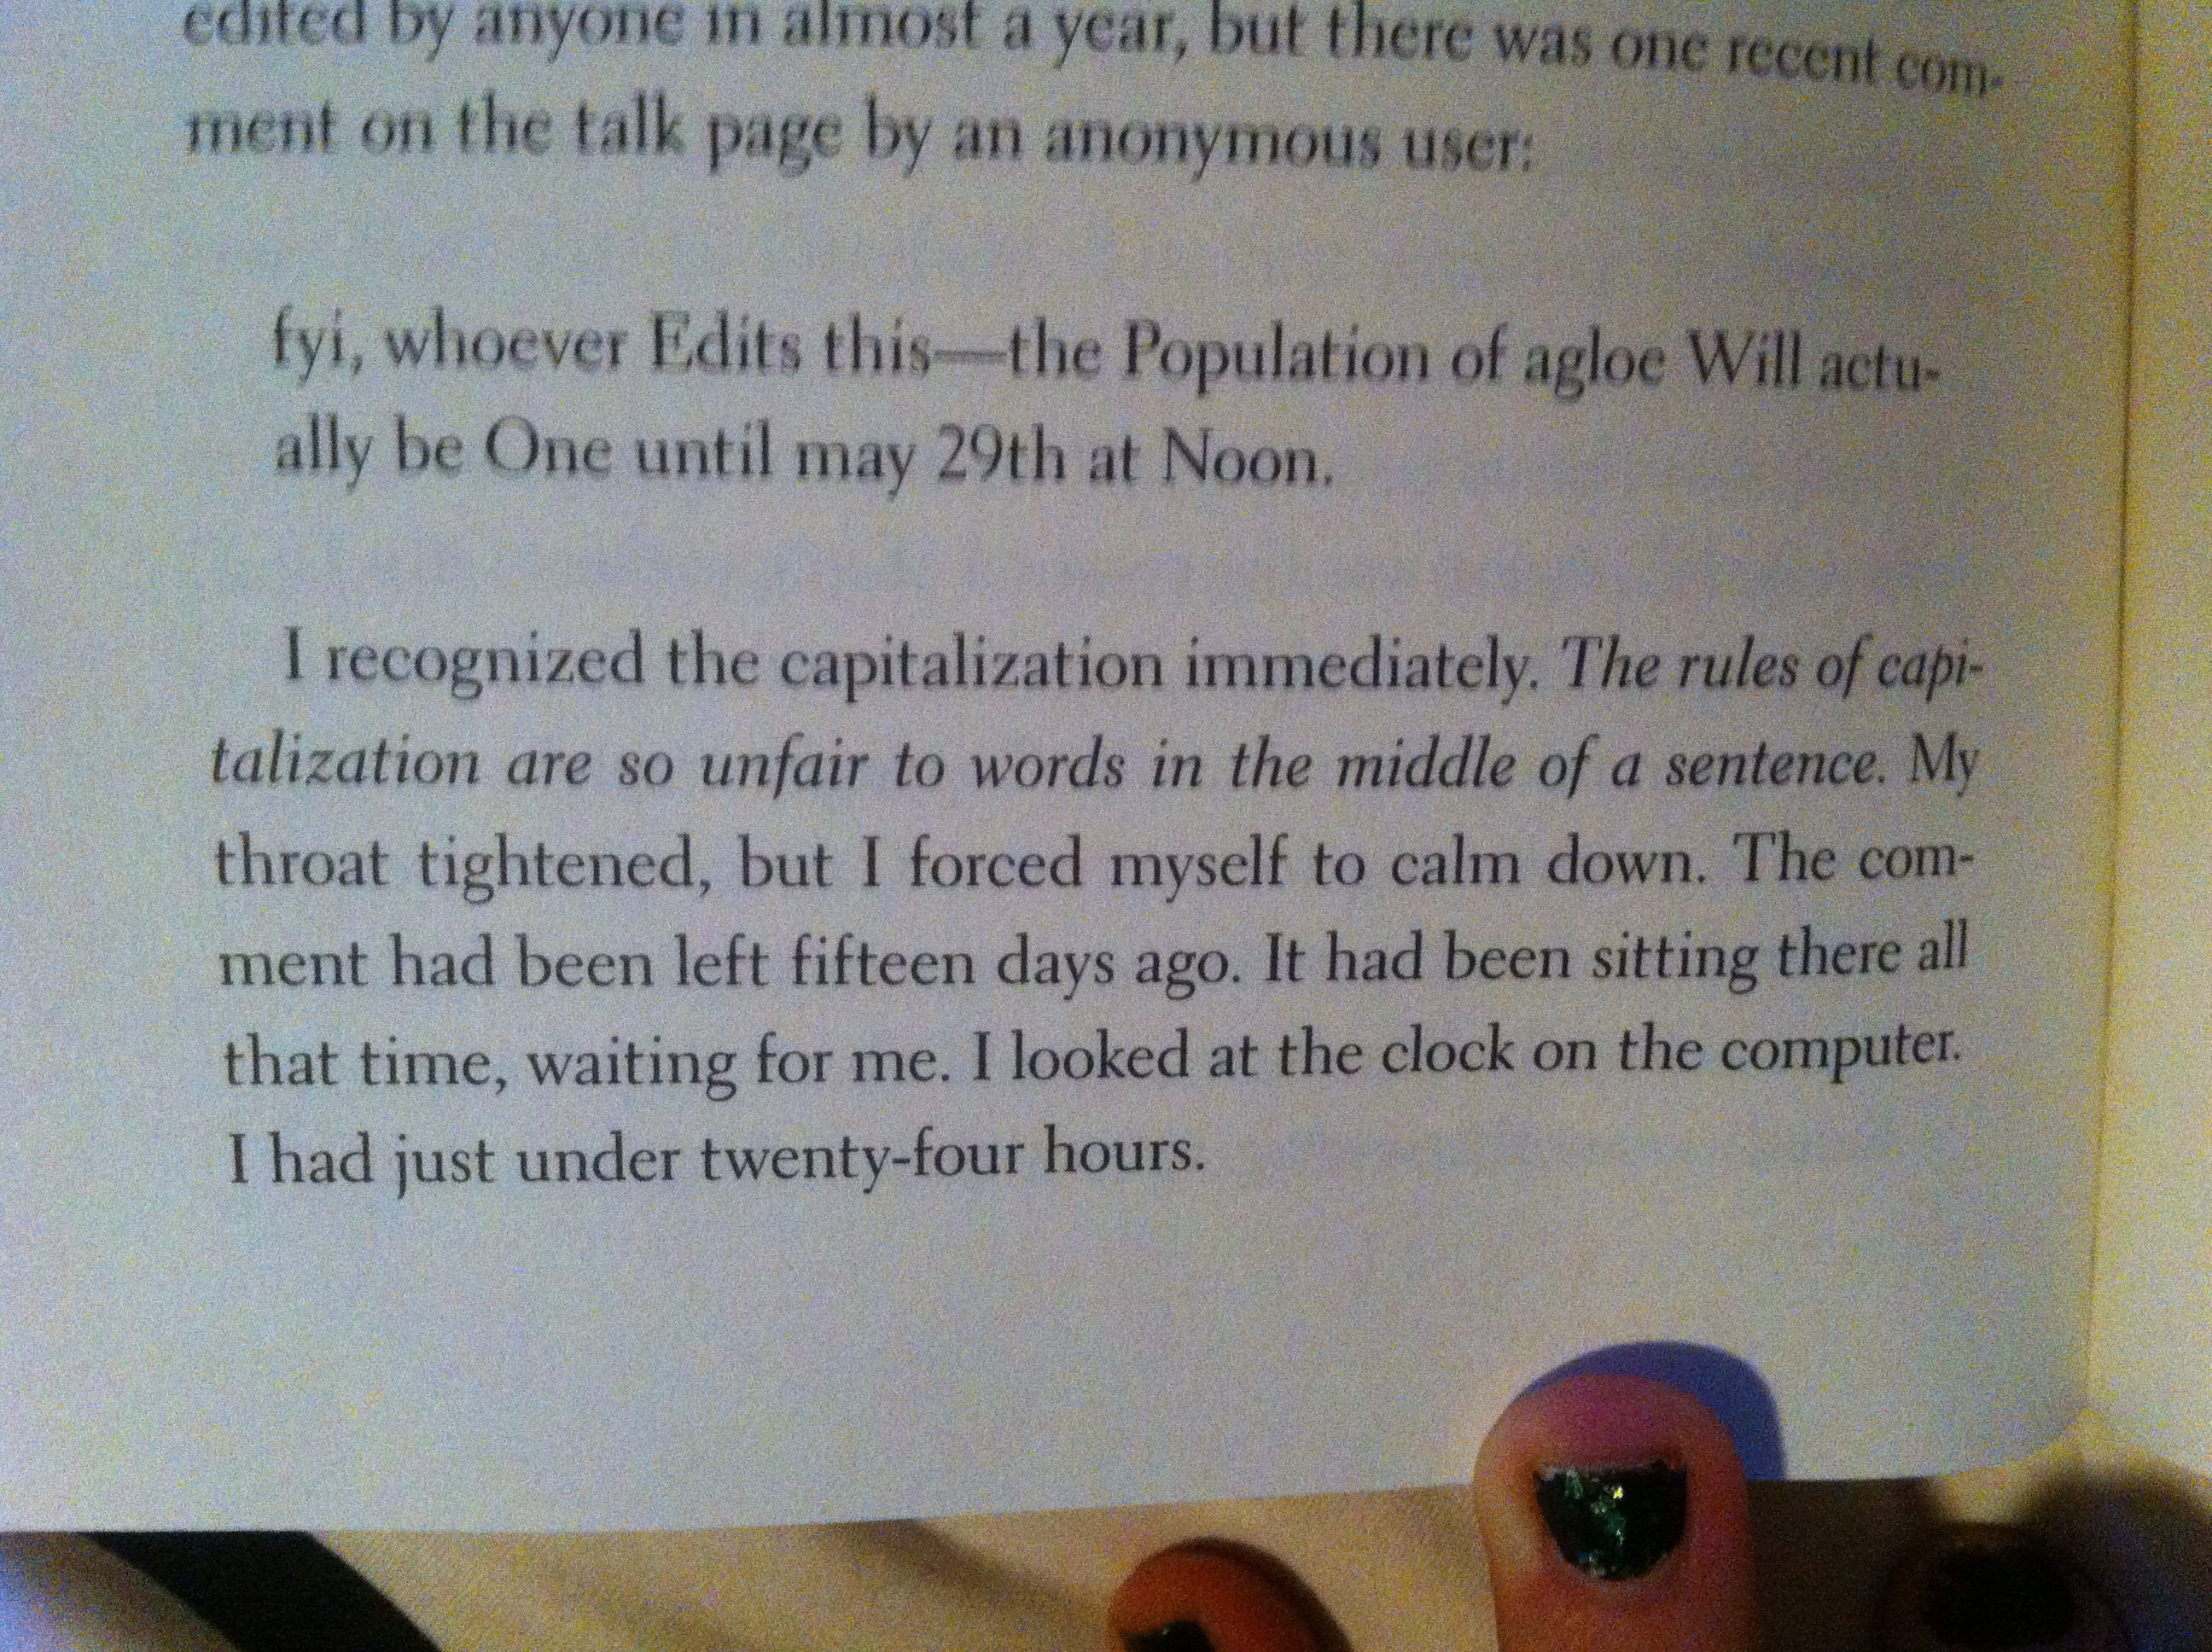 The Rules Of Capitalization Are So Unfair E To The Words In The Middle Of The Sentences